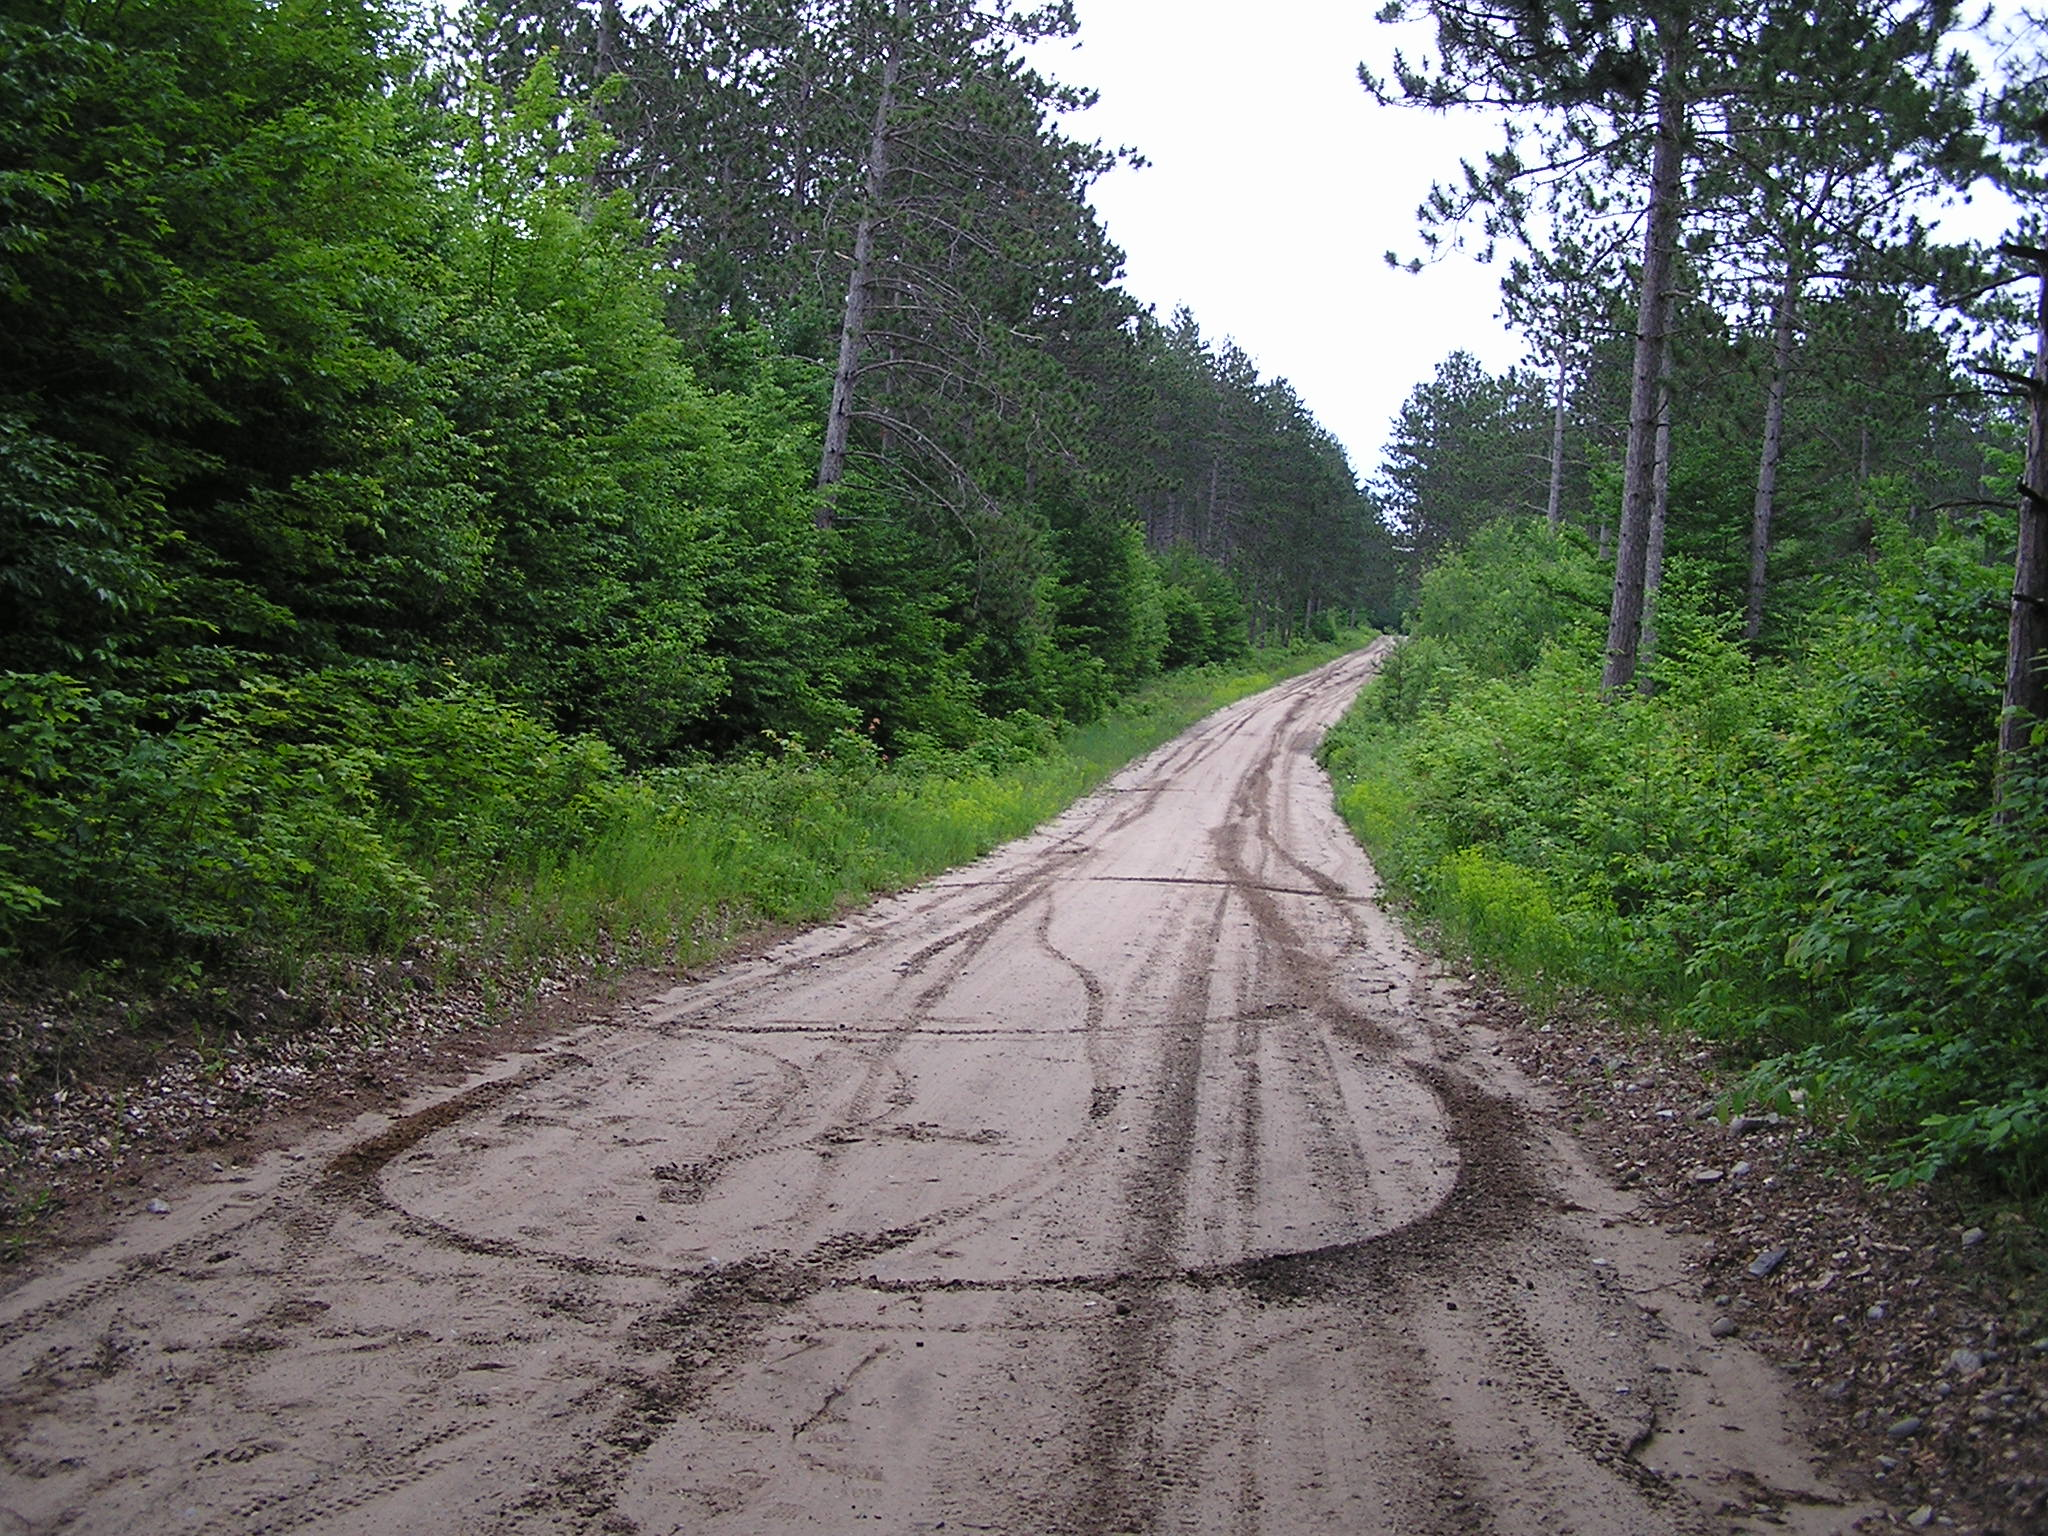 Some endless road we were riding on. Wolverine, MI